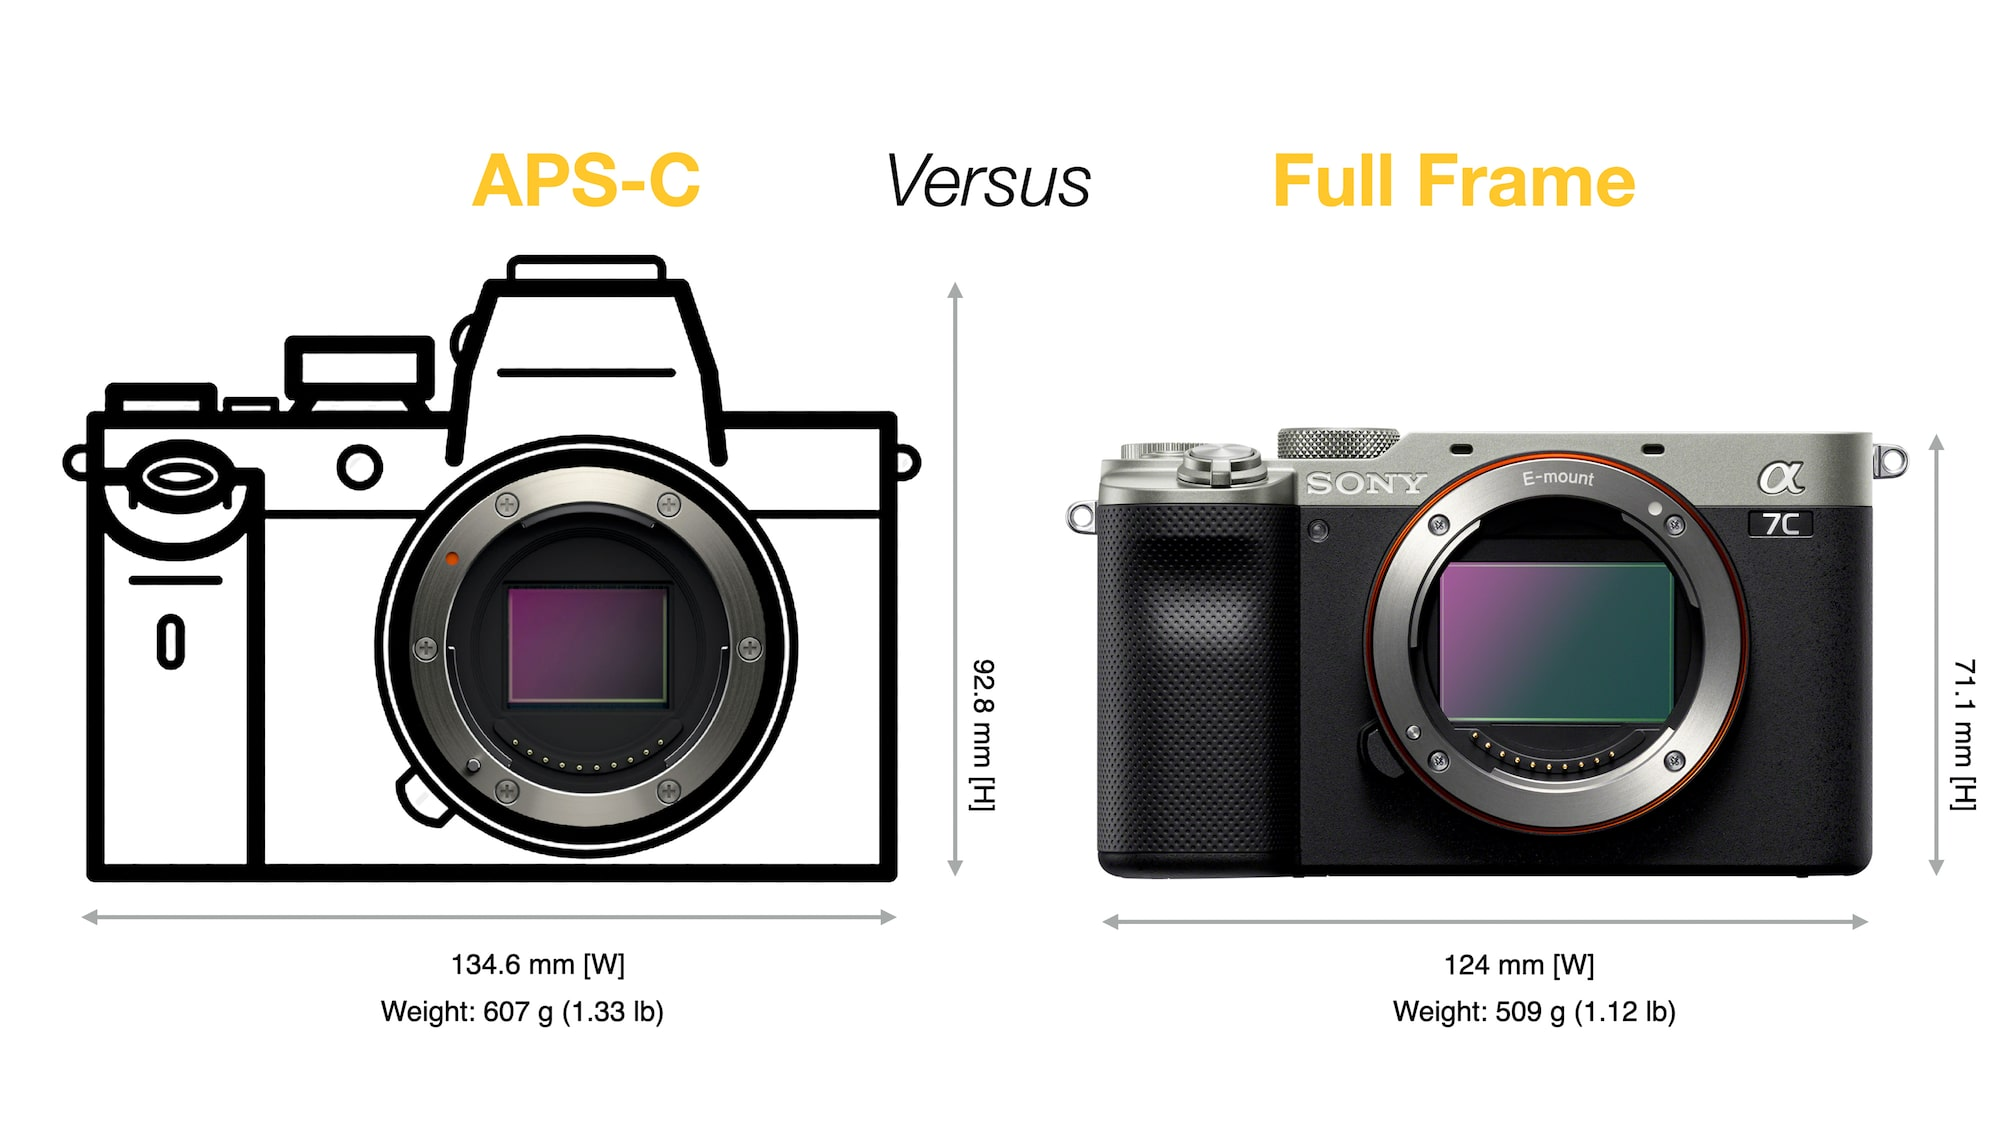 APS-C vs. Full-frame camera